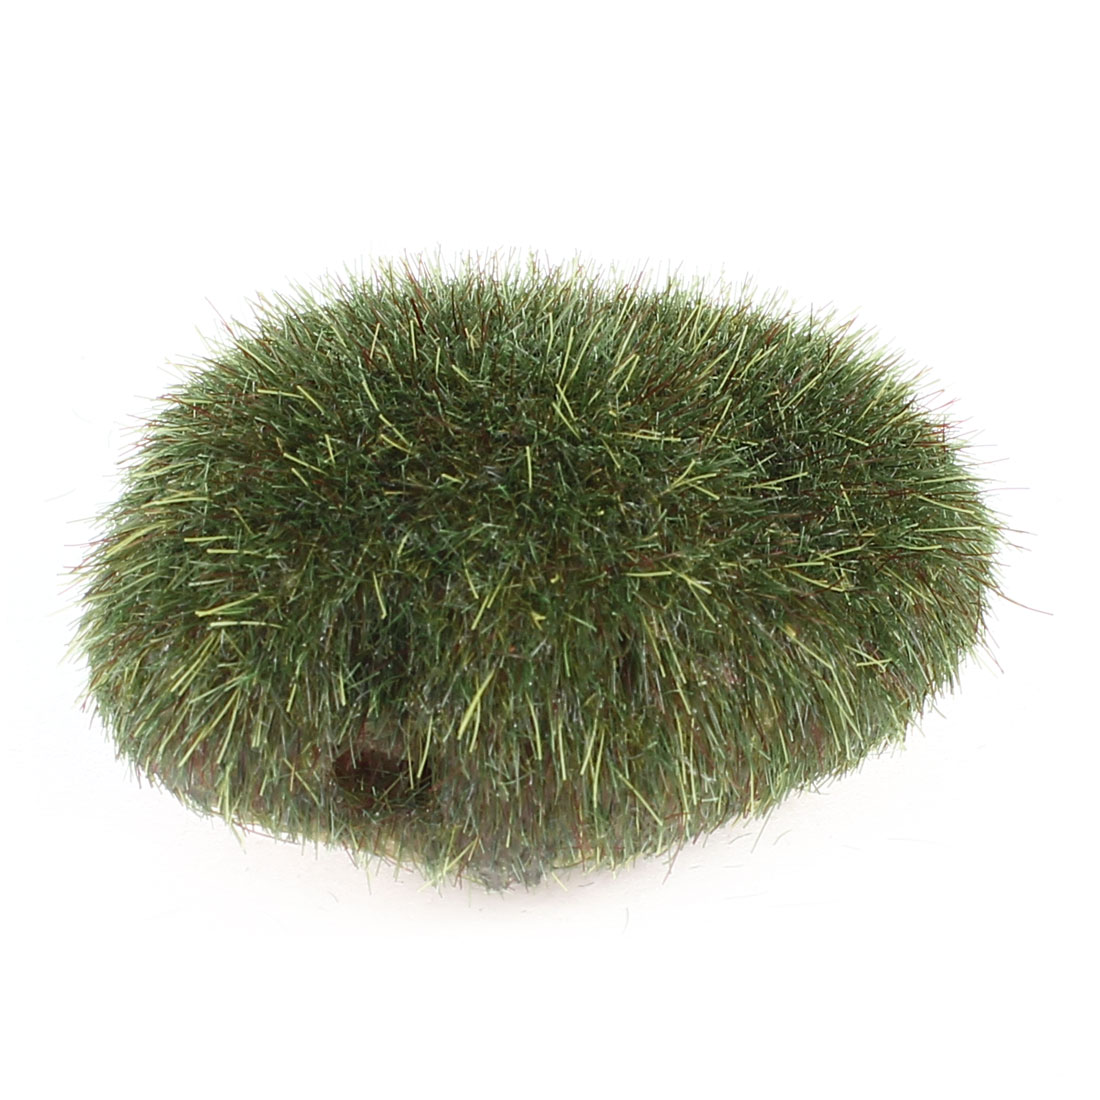 Brown Artificial Moss Stone Rocks Balls Cobbles Grass Plant Aquarium Decor